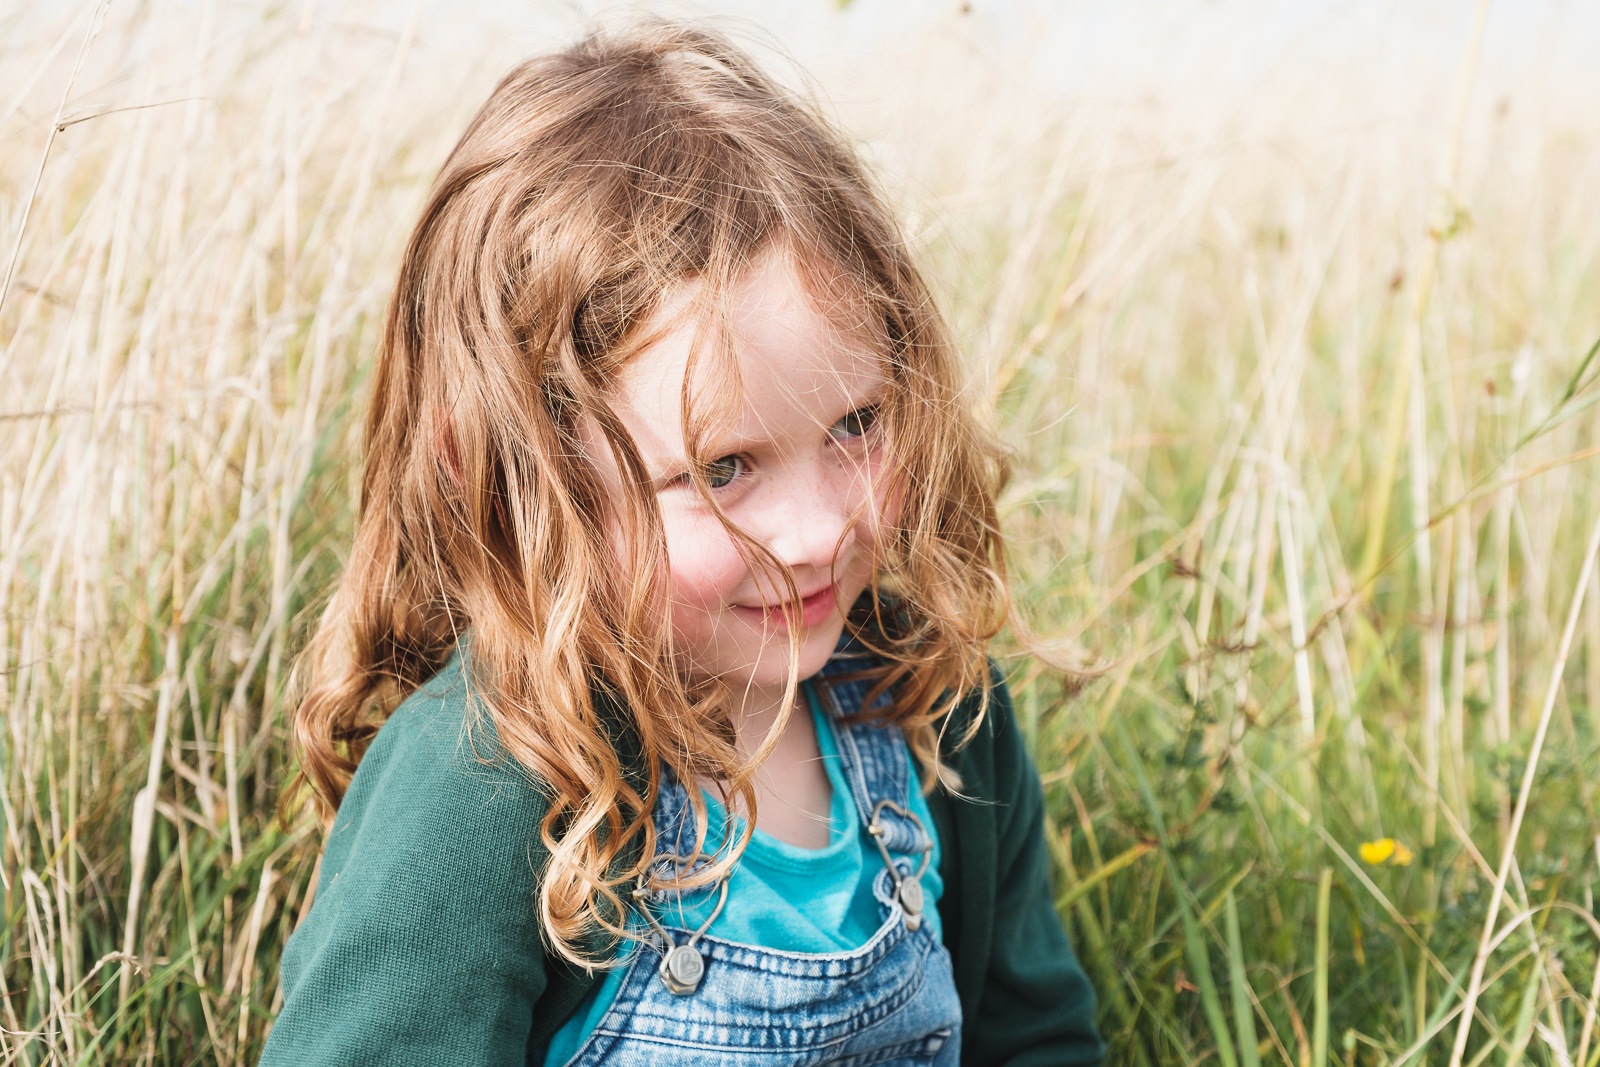 Young girl in relaxed pose in summer grass meadow with late afternoon sun